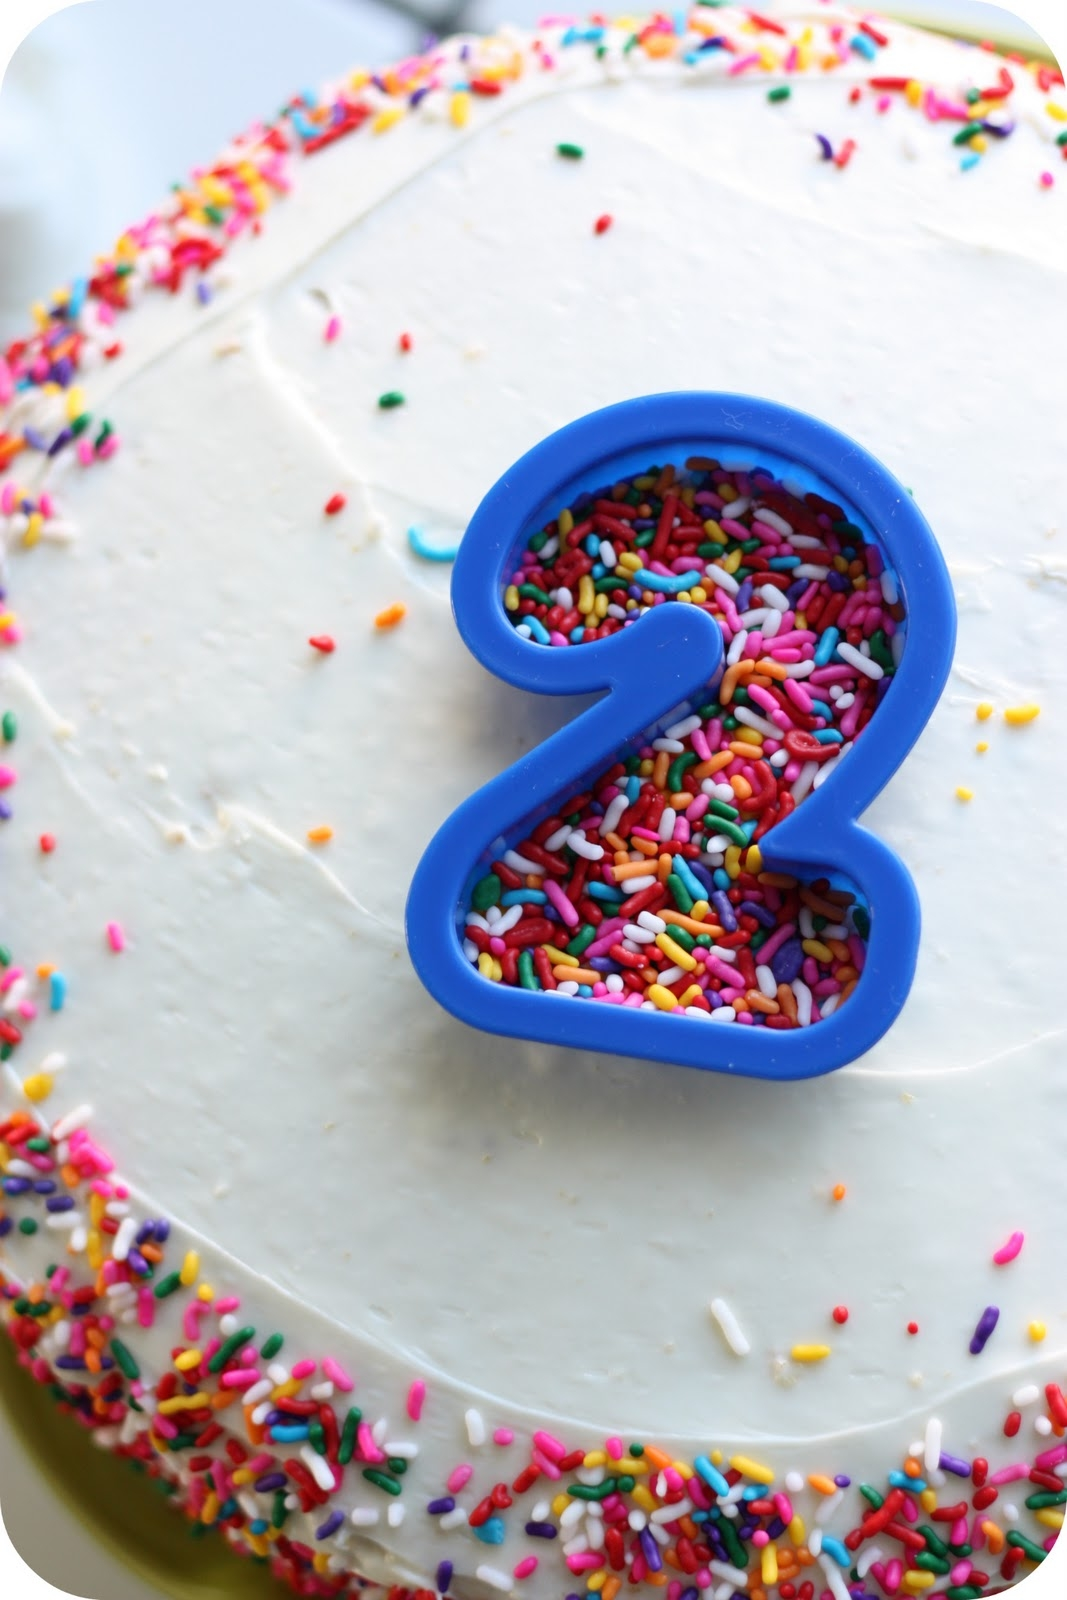 Easy Cake Decorating With Sprinkles : 20 Birthday Cake Decoration Ideas CrystalandComp.com